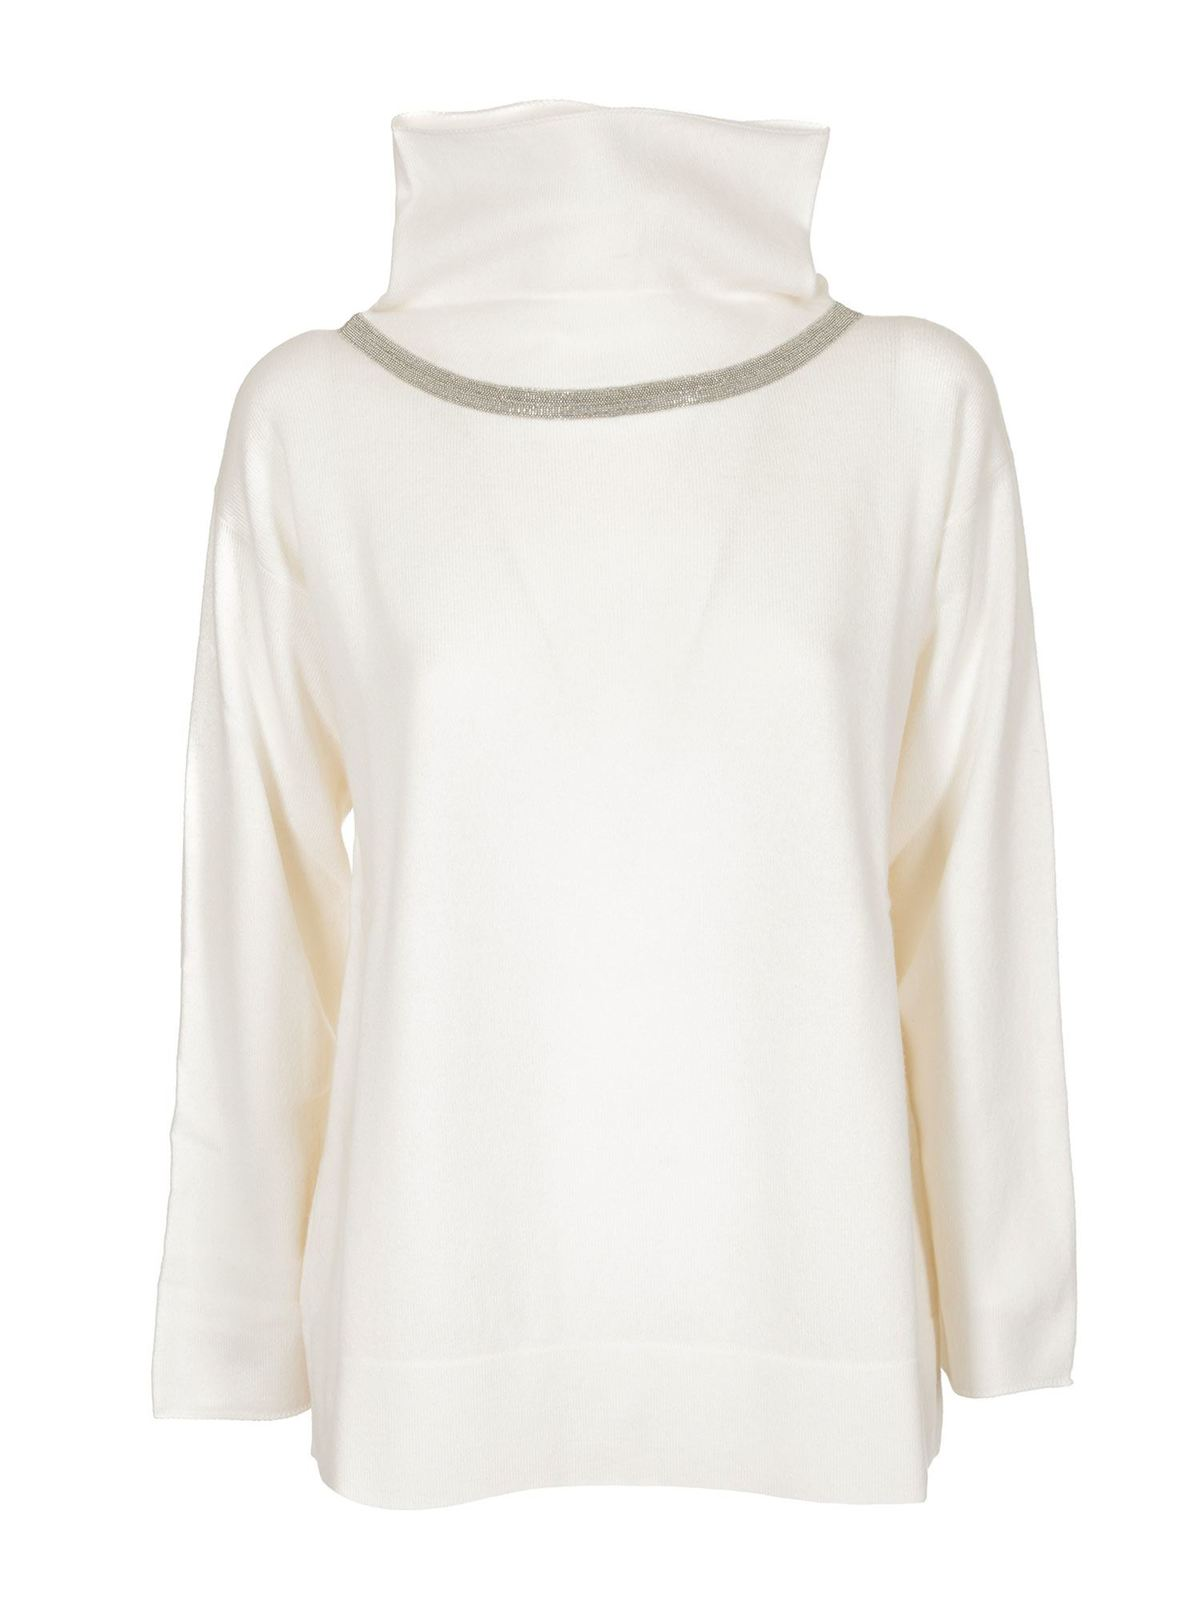 Fabiana Filippi EMBELLISHED TURTLENECK IN WHITE